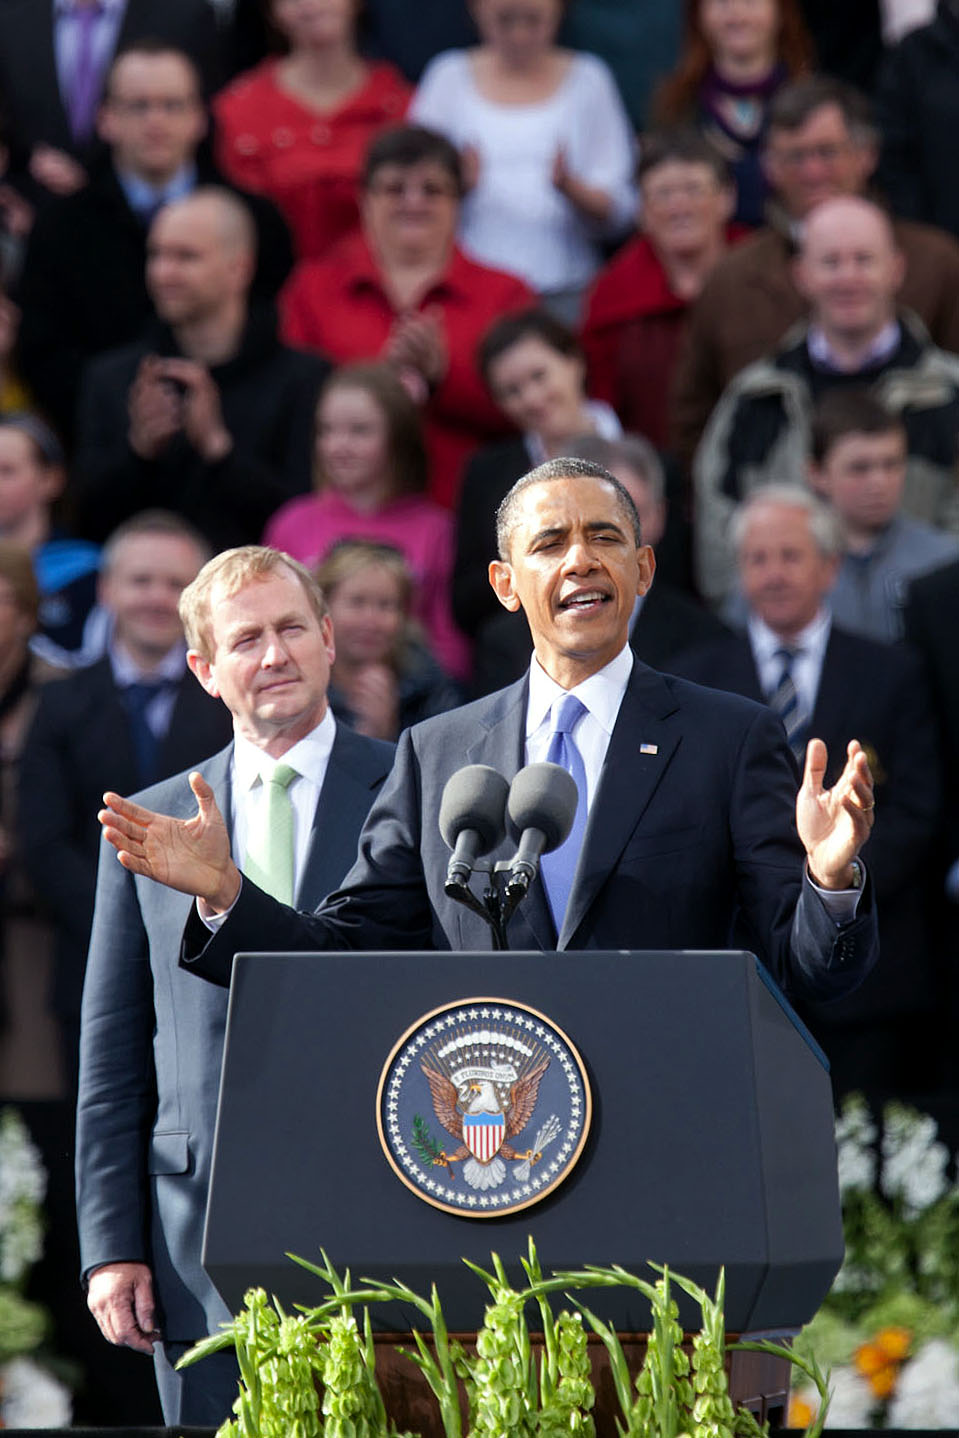 President Barack Obama Addresses a Crowd at College Green in Dublin, Ireland